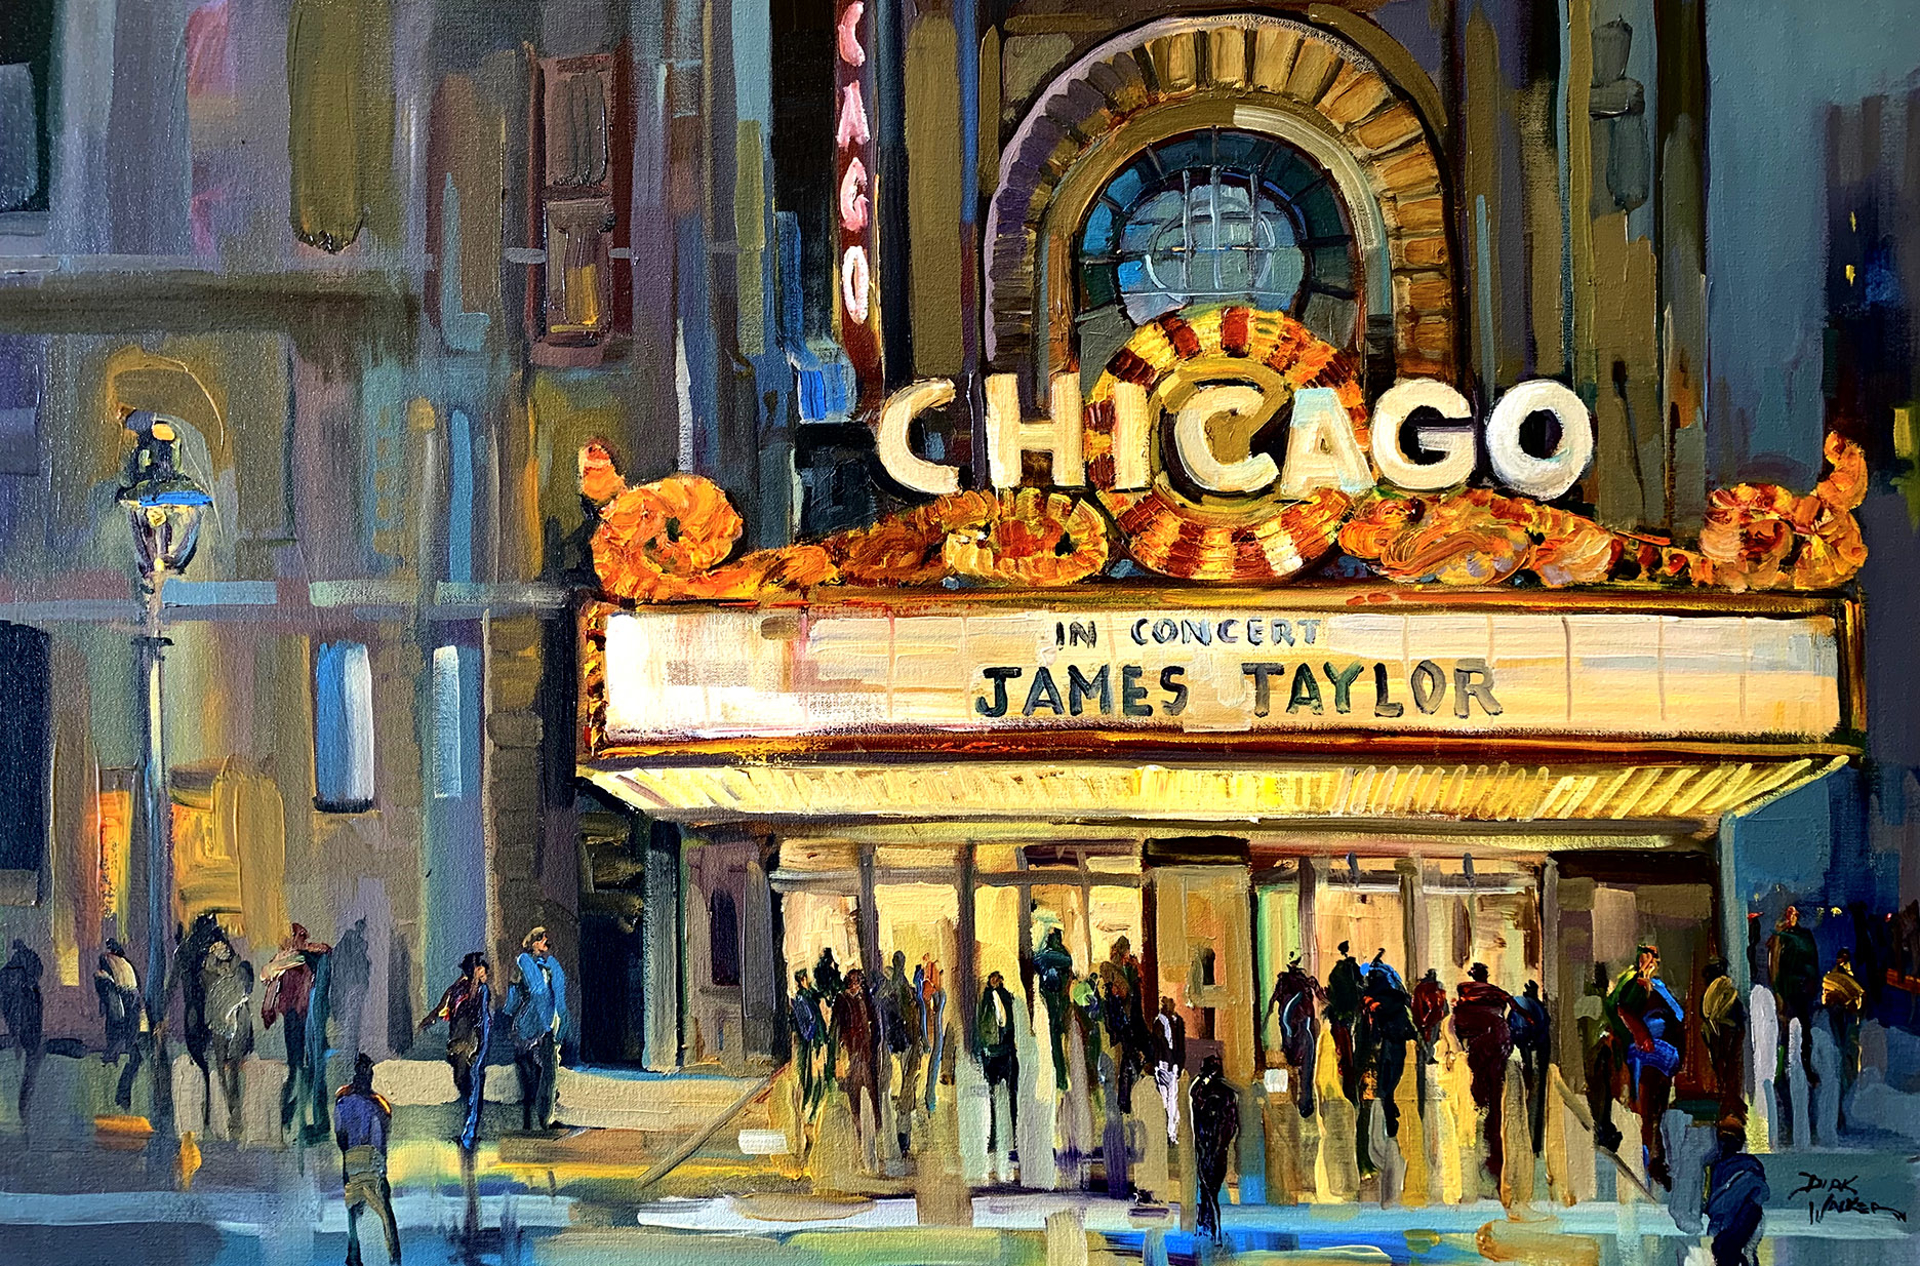 Going to See Sweet Baby James - Chicago Theatre by Dirk Walker